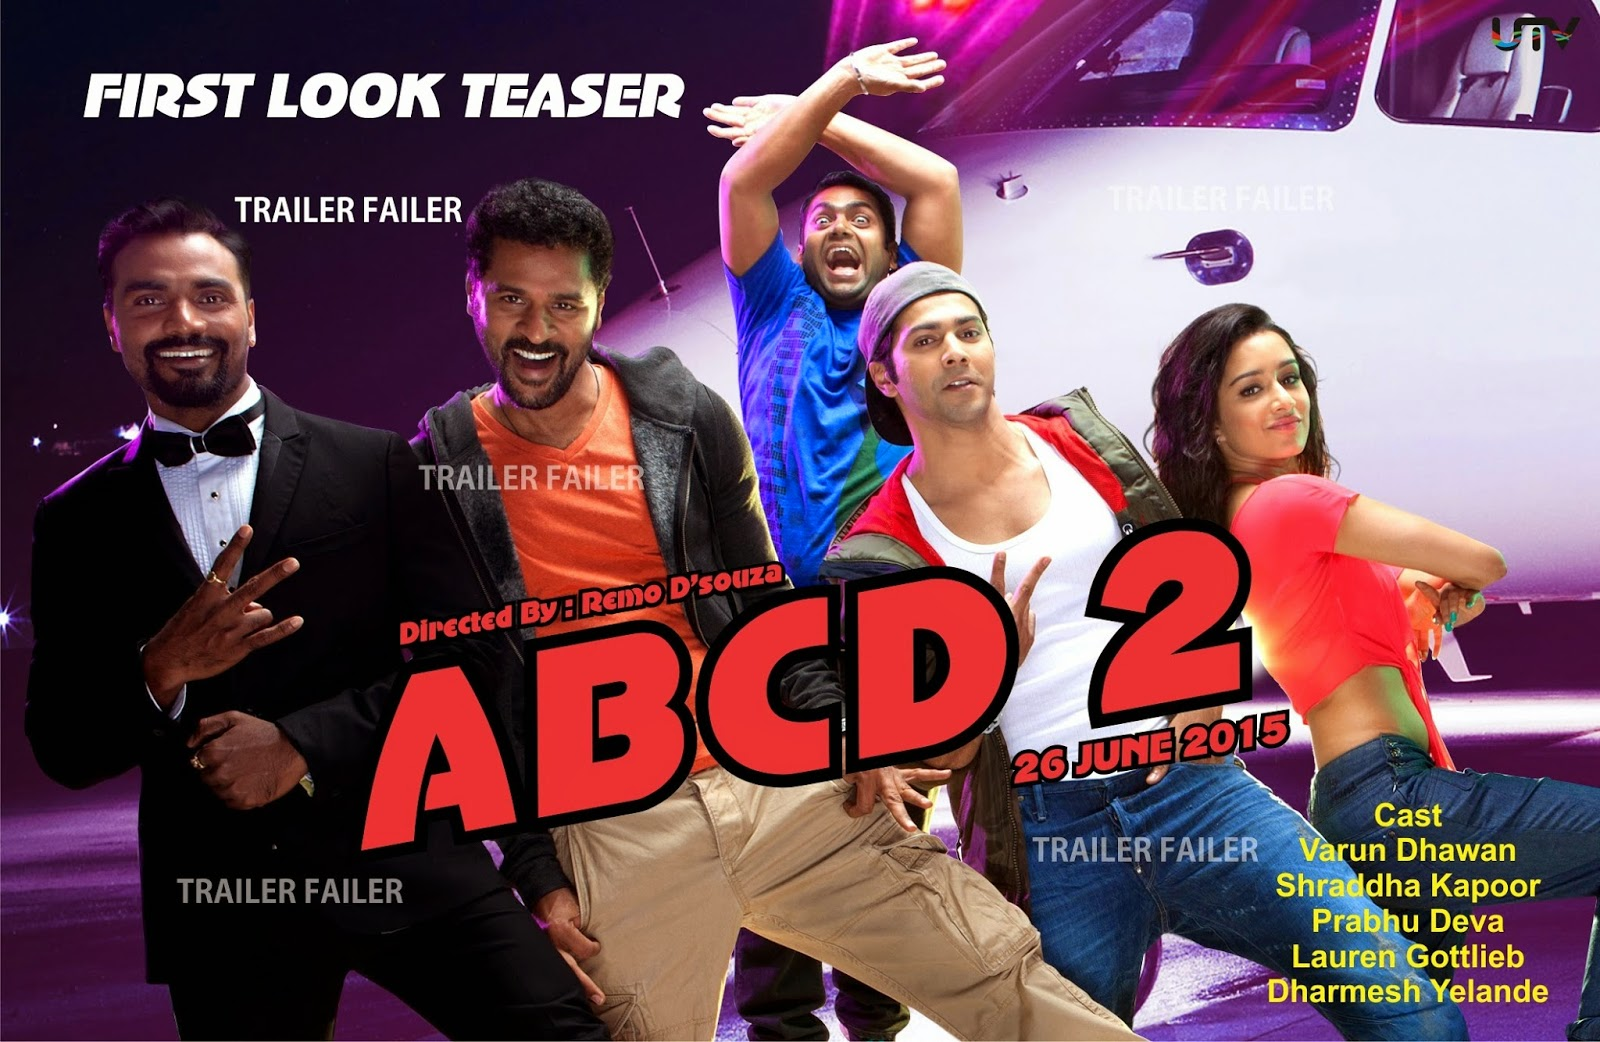 ABCD - Any Body Can Dance video song  1080p movie